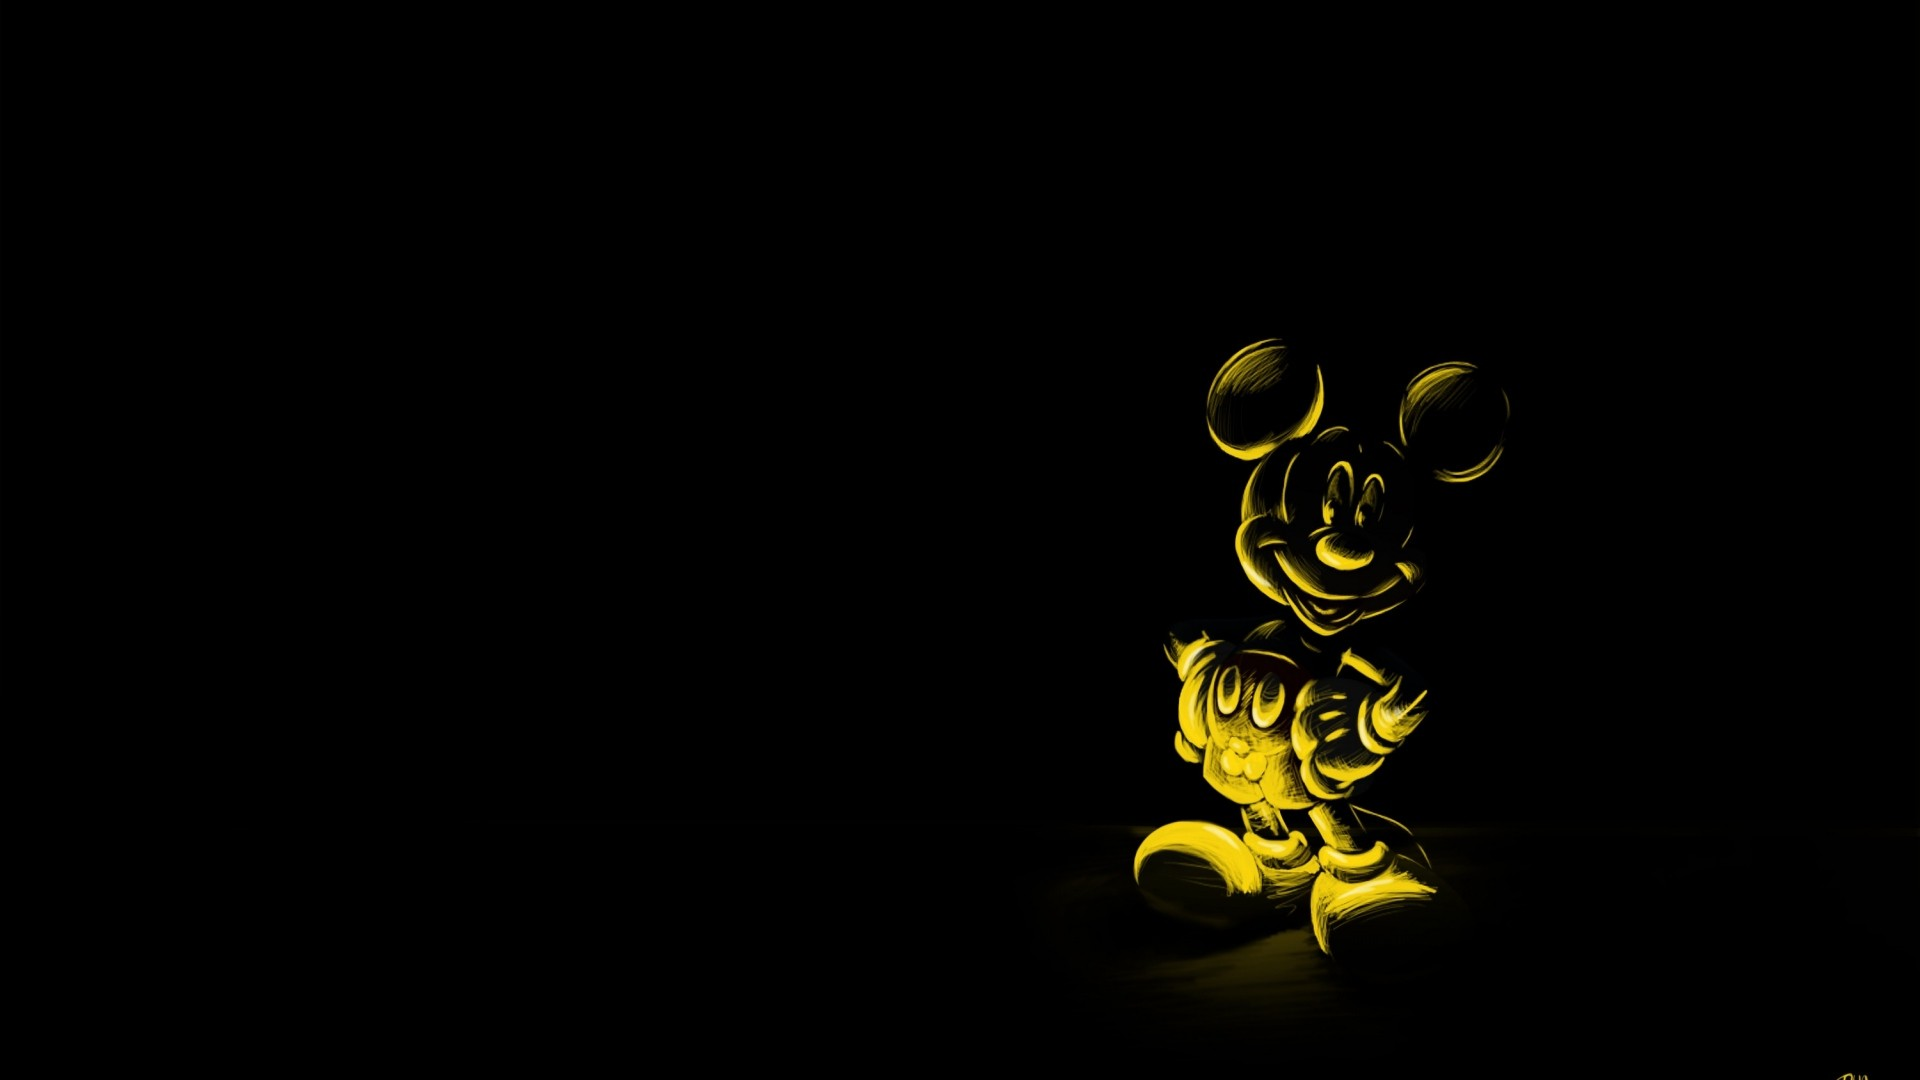 Mickey Mouse Background Download Free Wallpapers For Desktop